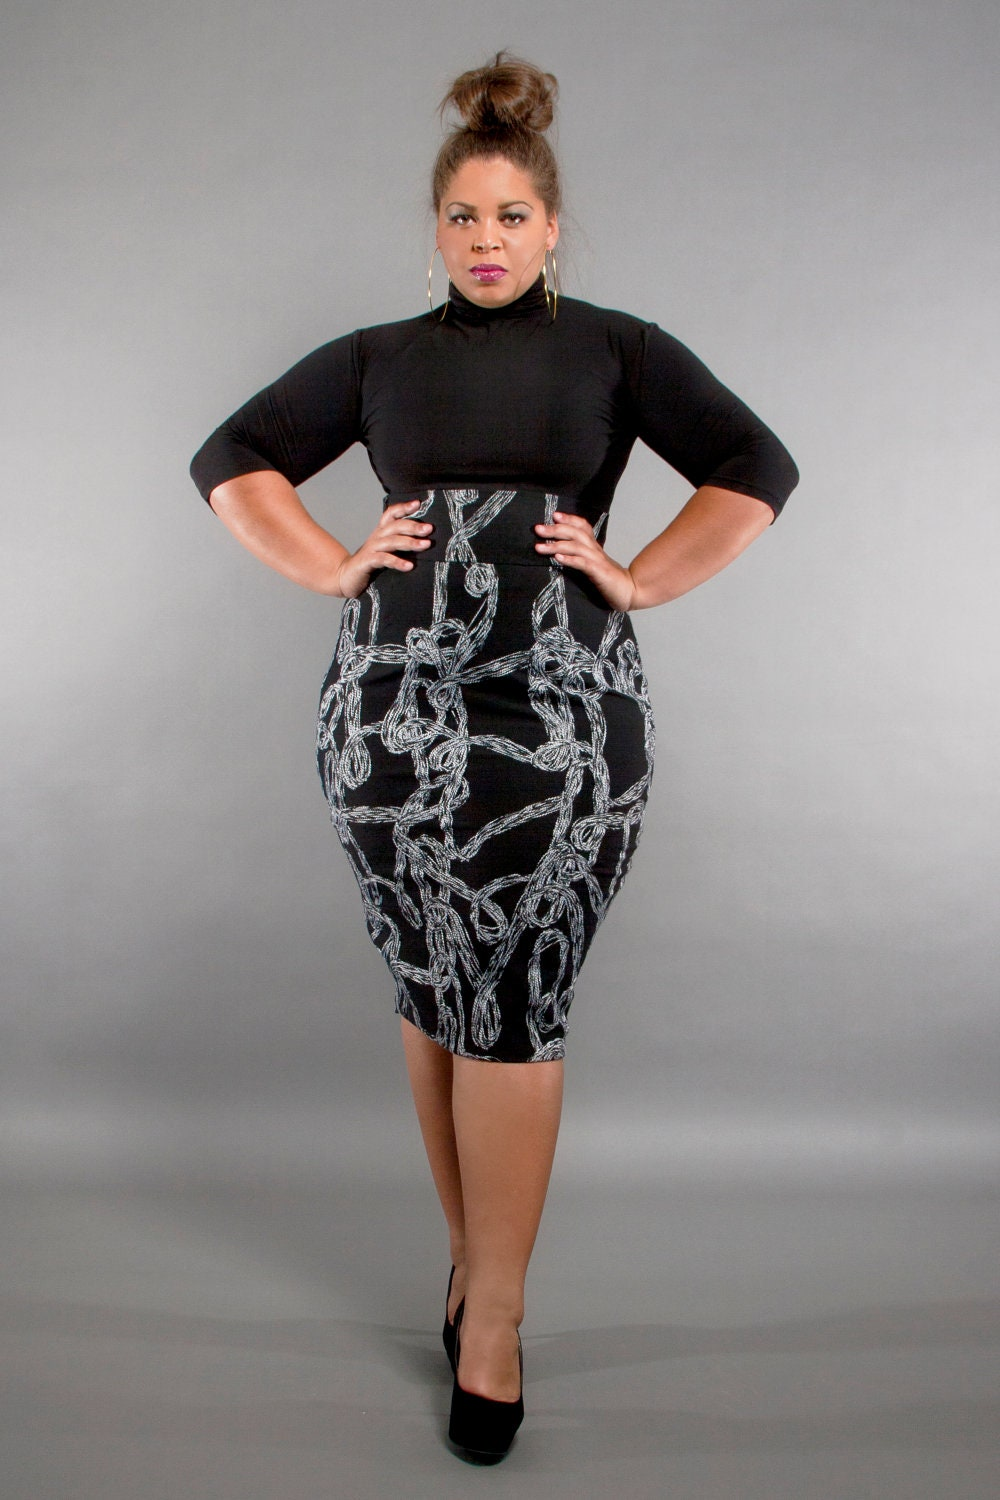 jibri plus size high waist pencil skirt gray swirl by